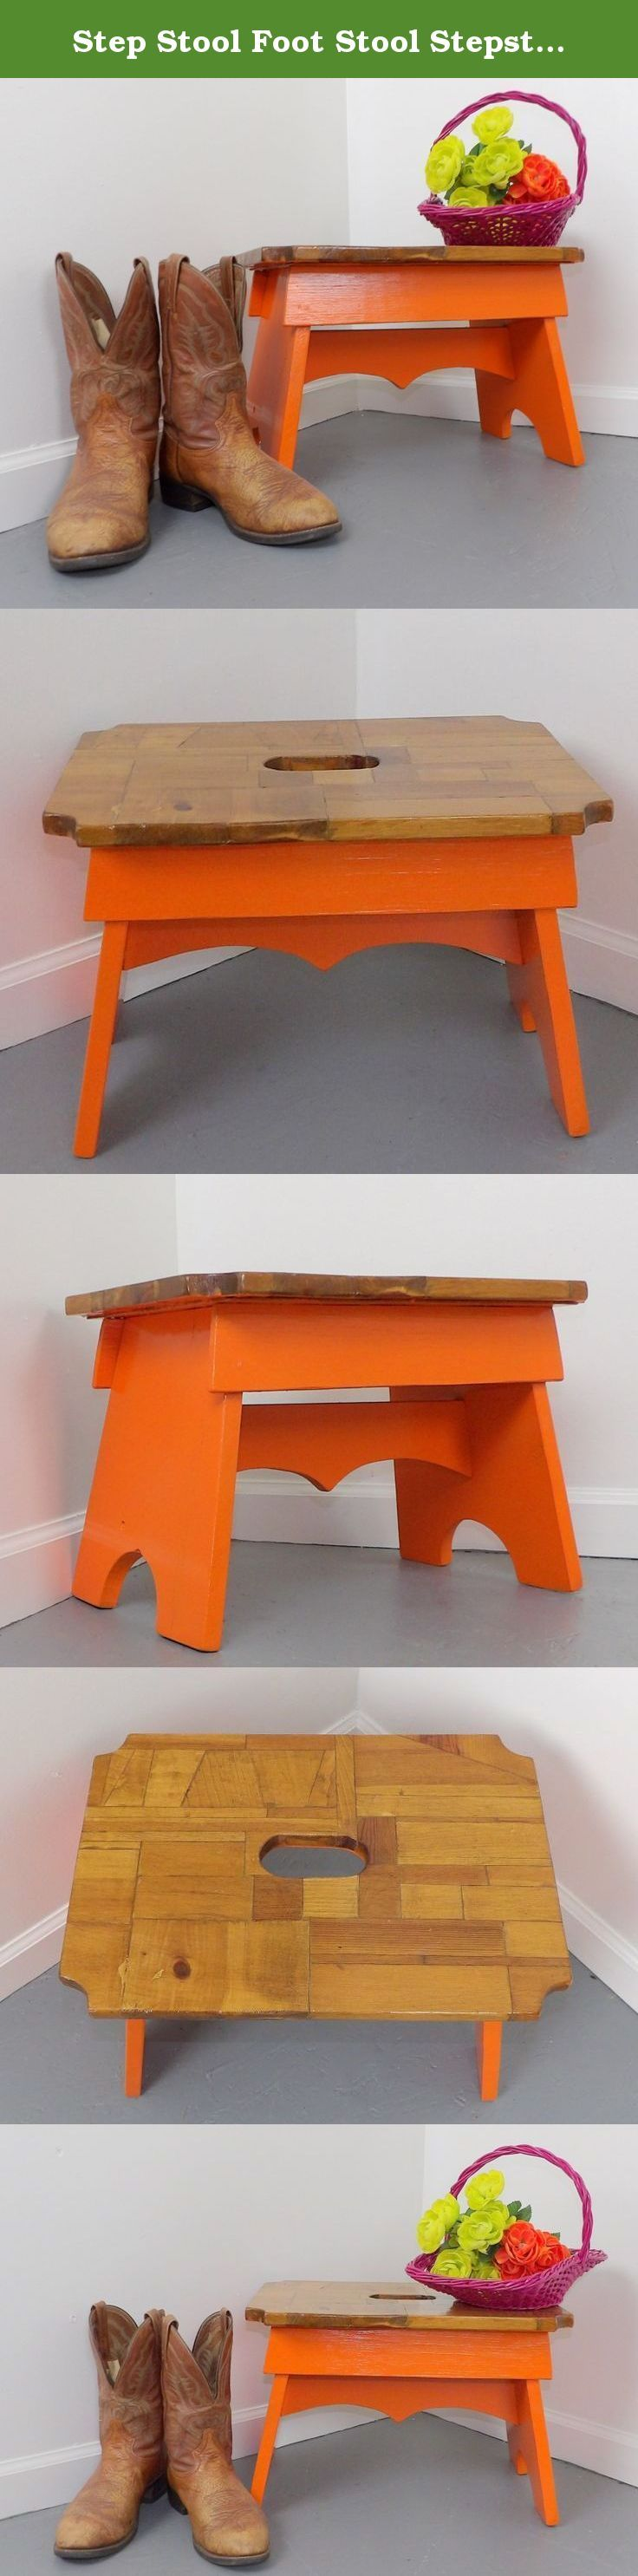 image quarter bamboo bathroom stool step stool foot stool stepstool orange kitchen vtg vintage stepstool orange wood kitchen step small